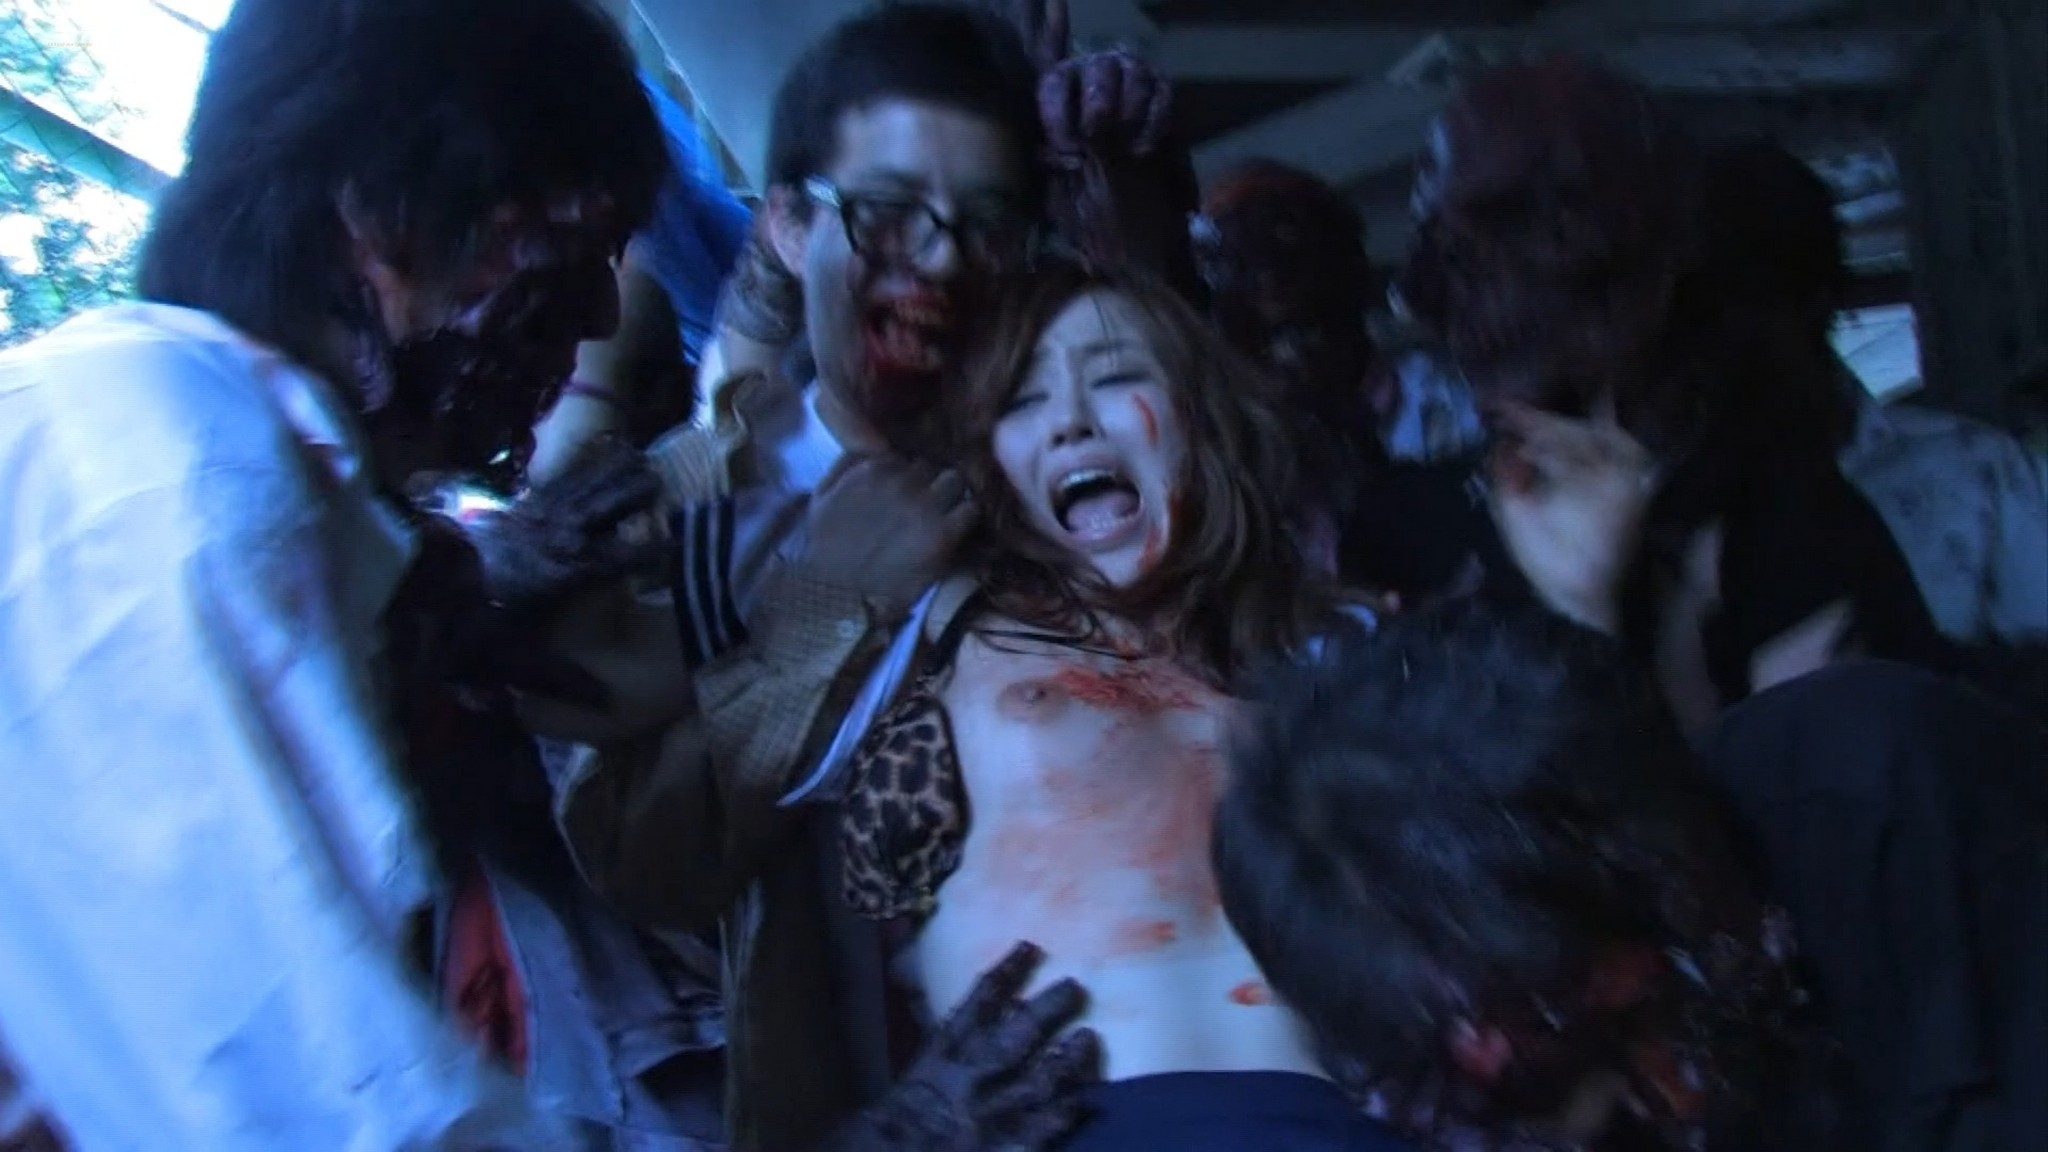 Yui Aikawa nude sex Asami Rina Aikawa and others nude and a lot of sex Lust of the Dead JP 2012 1080p BluRay 18